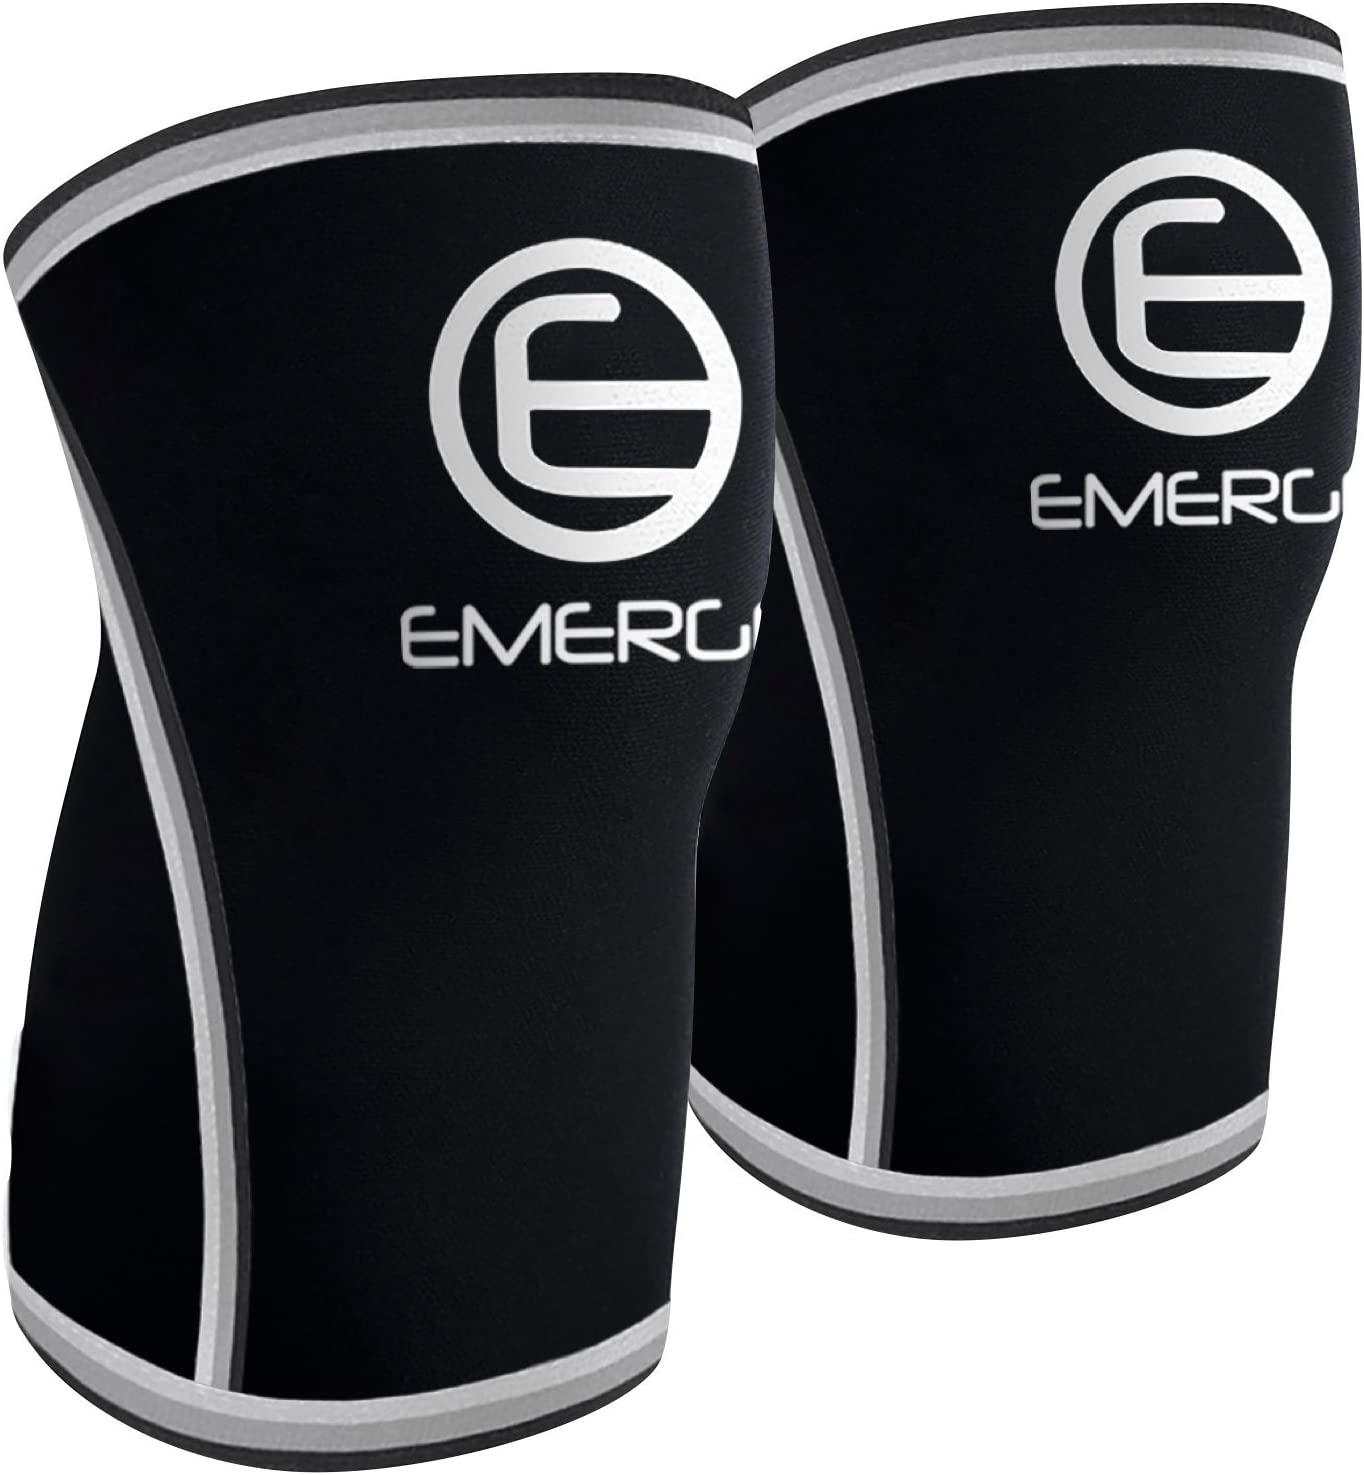 Knee Sleeves Compression Support by Kn - Genuine Free Shipping Premium Max 80% OFF Emerge Neoprene